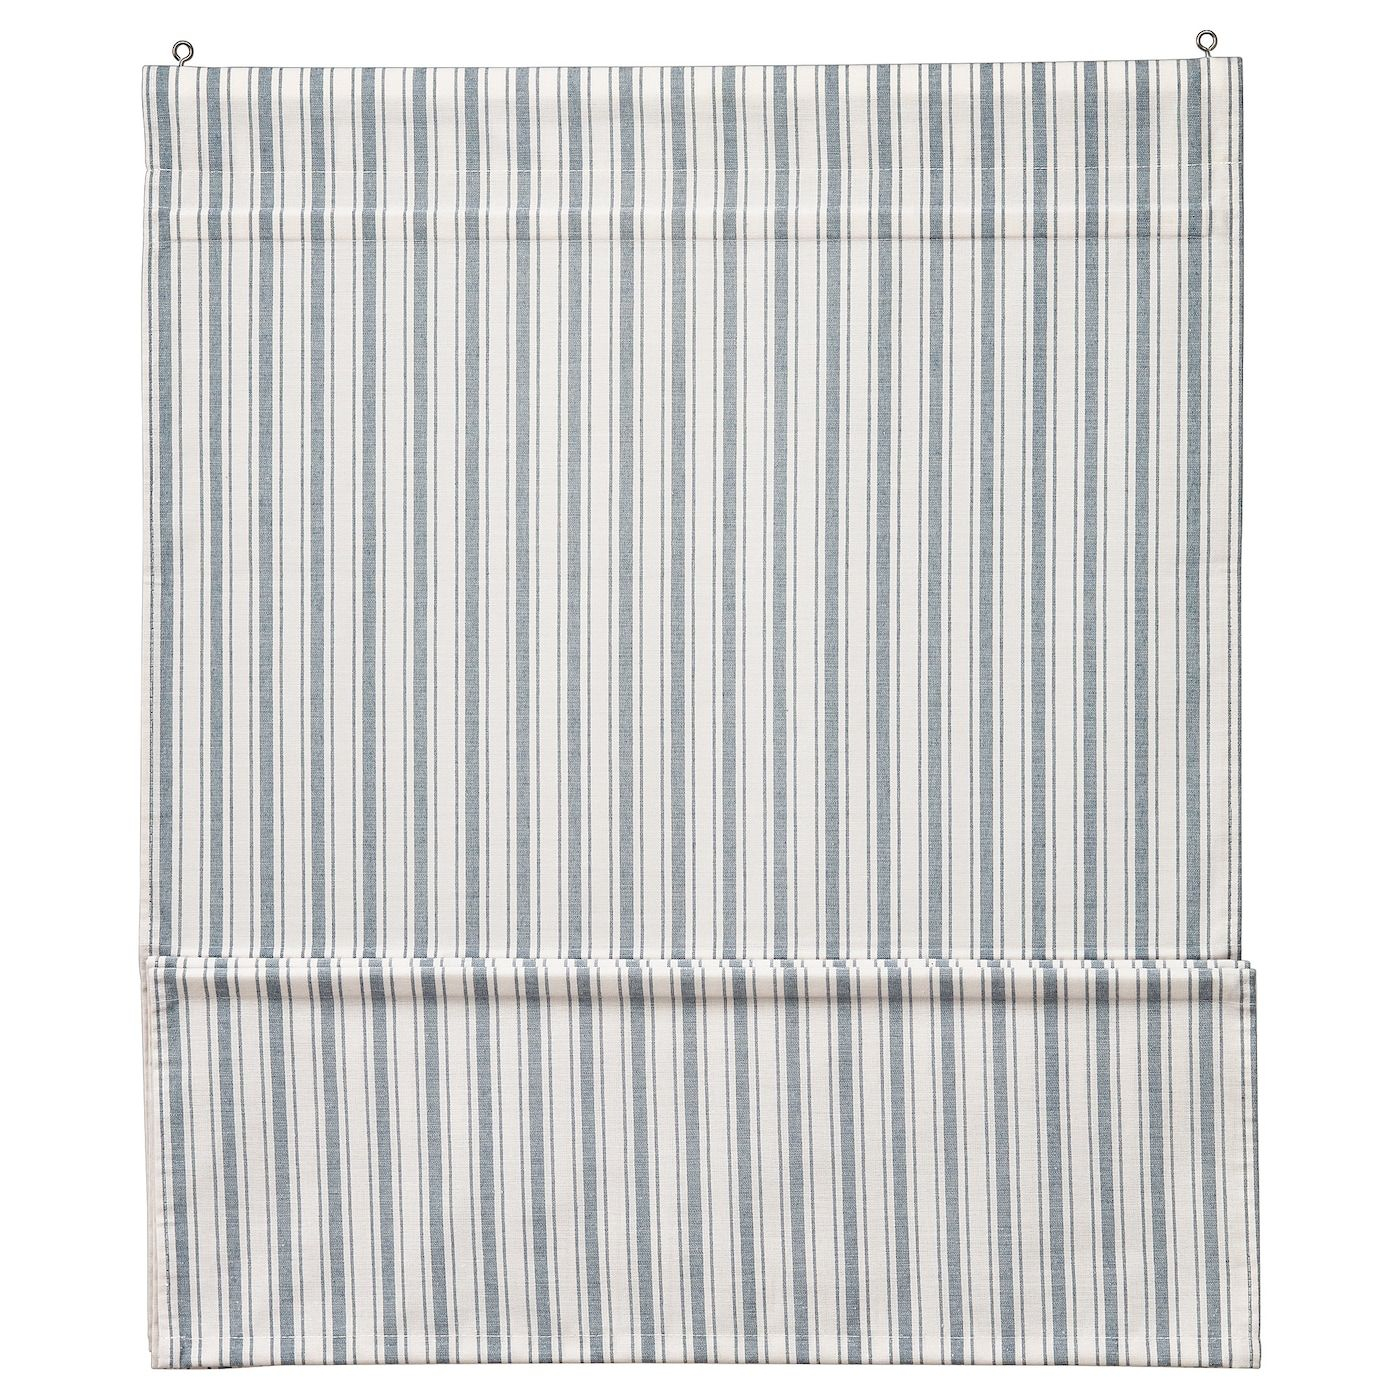 Ringblomma Roman Blind White Blue 48x63 Ikea In 2020 Roman Blinds Curtains With Blinds Blinds